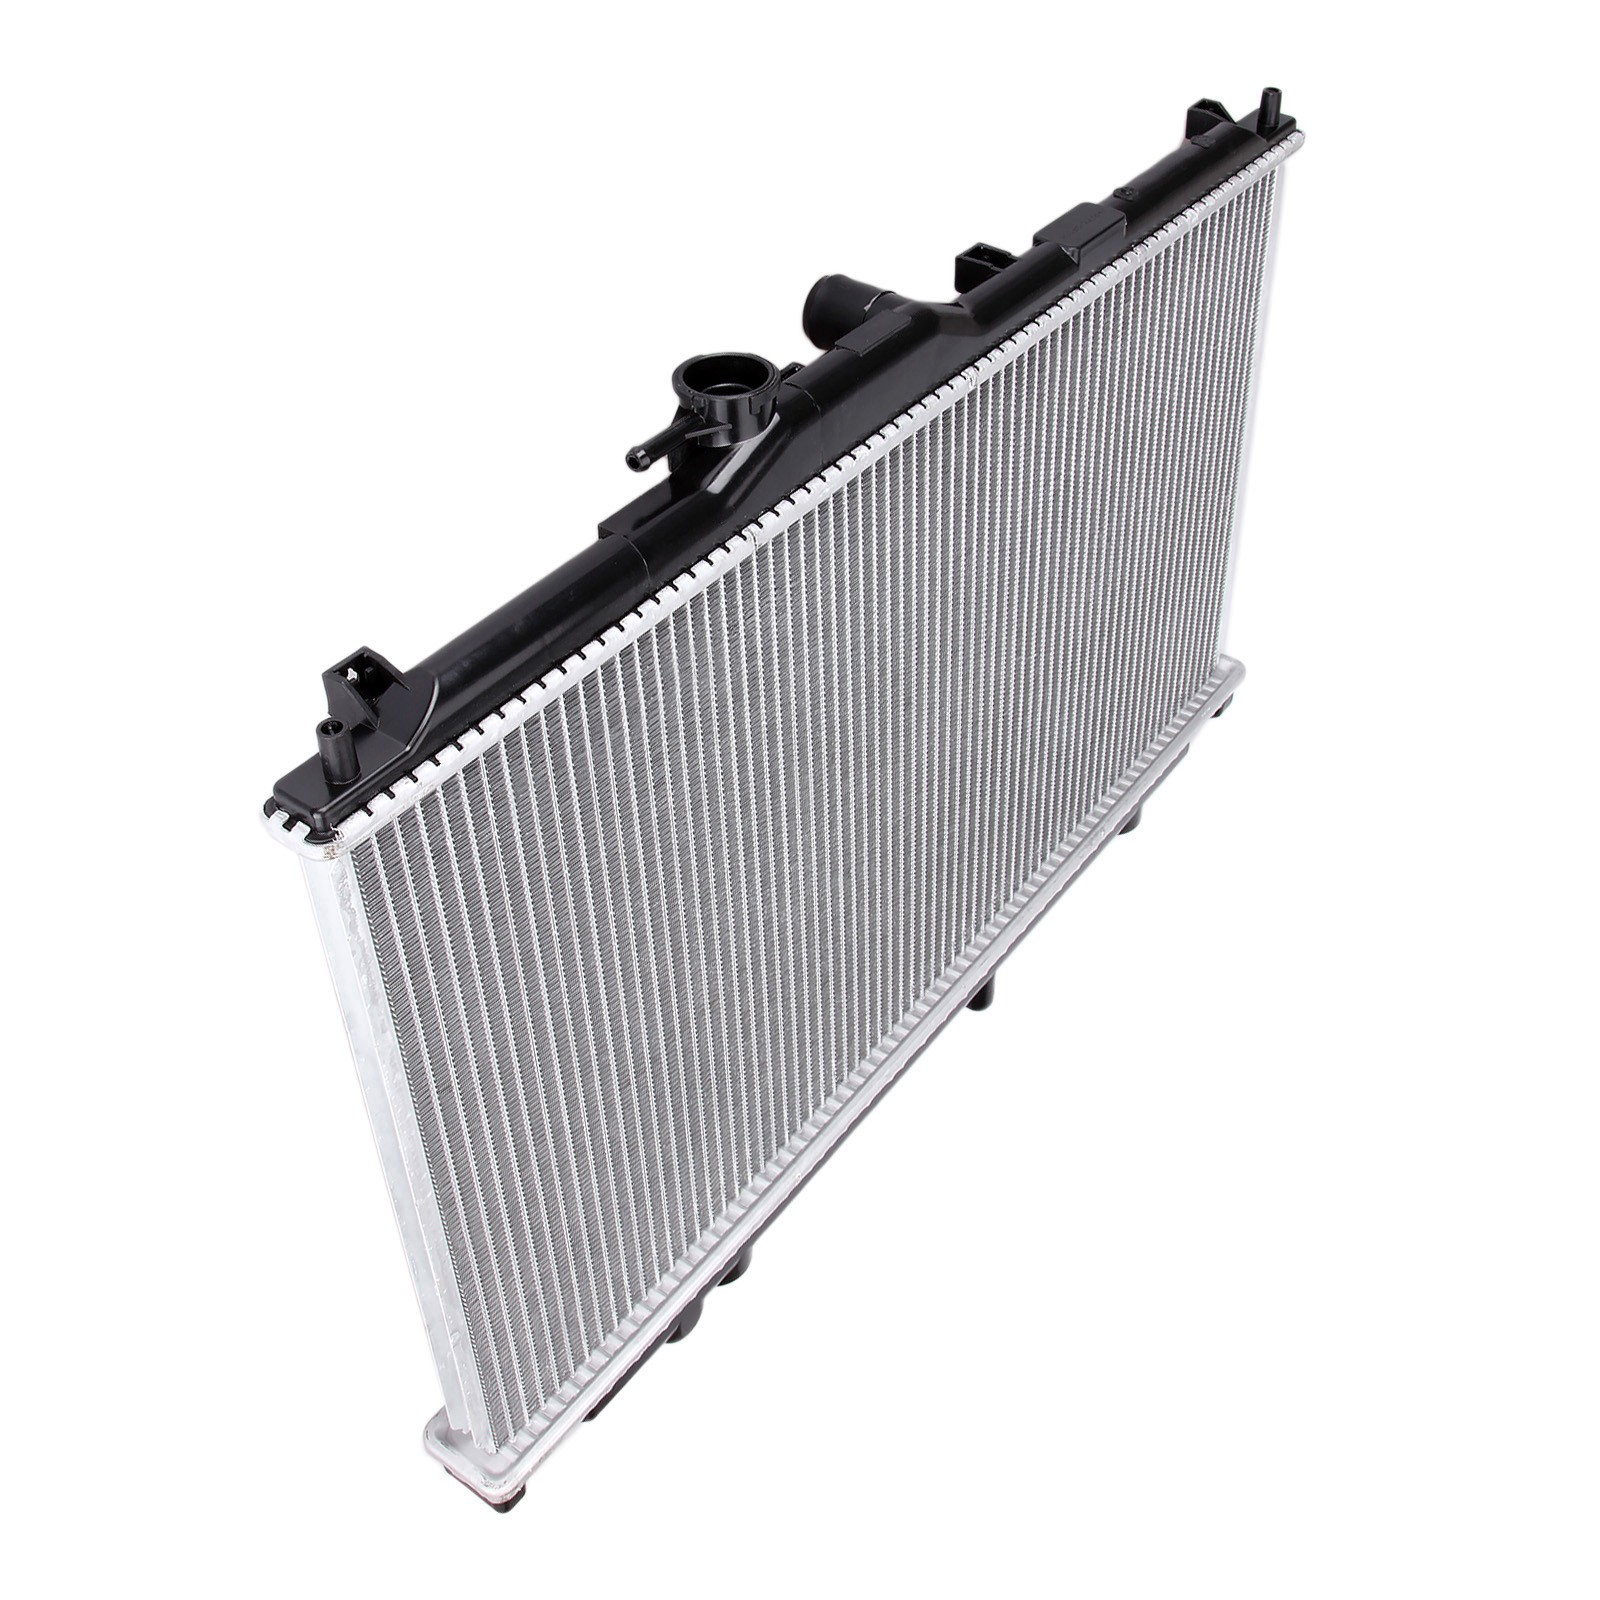 Dromedary-Find 2002 Honda Civic Radiator Honda Civic Aluminum Radiator From Hongdao-3